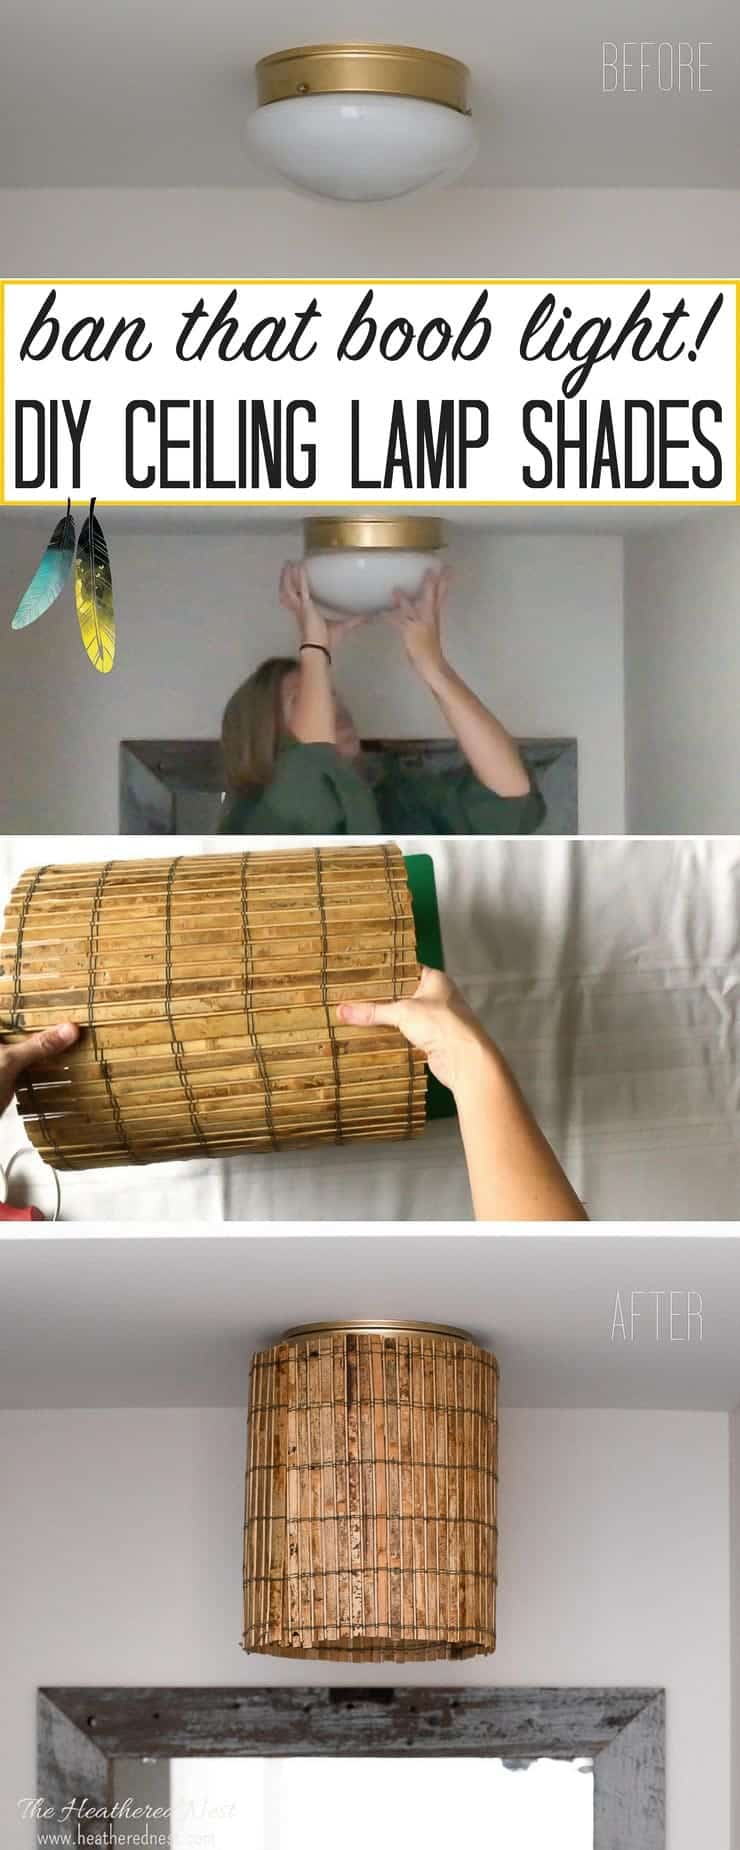 Easy DIY ceiling lamp shades to hide a boob light | The ...